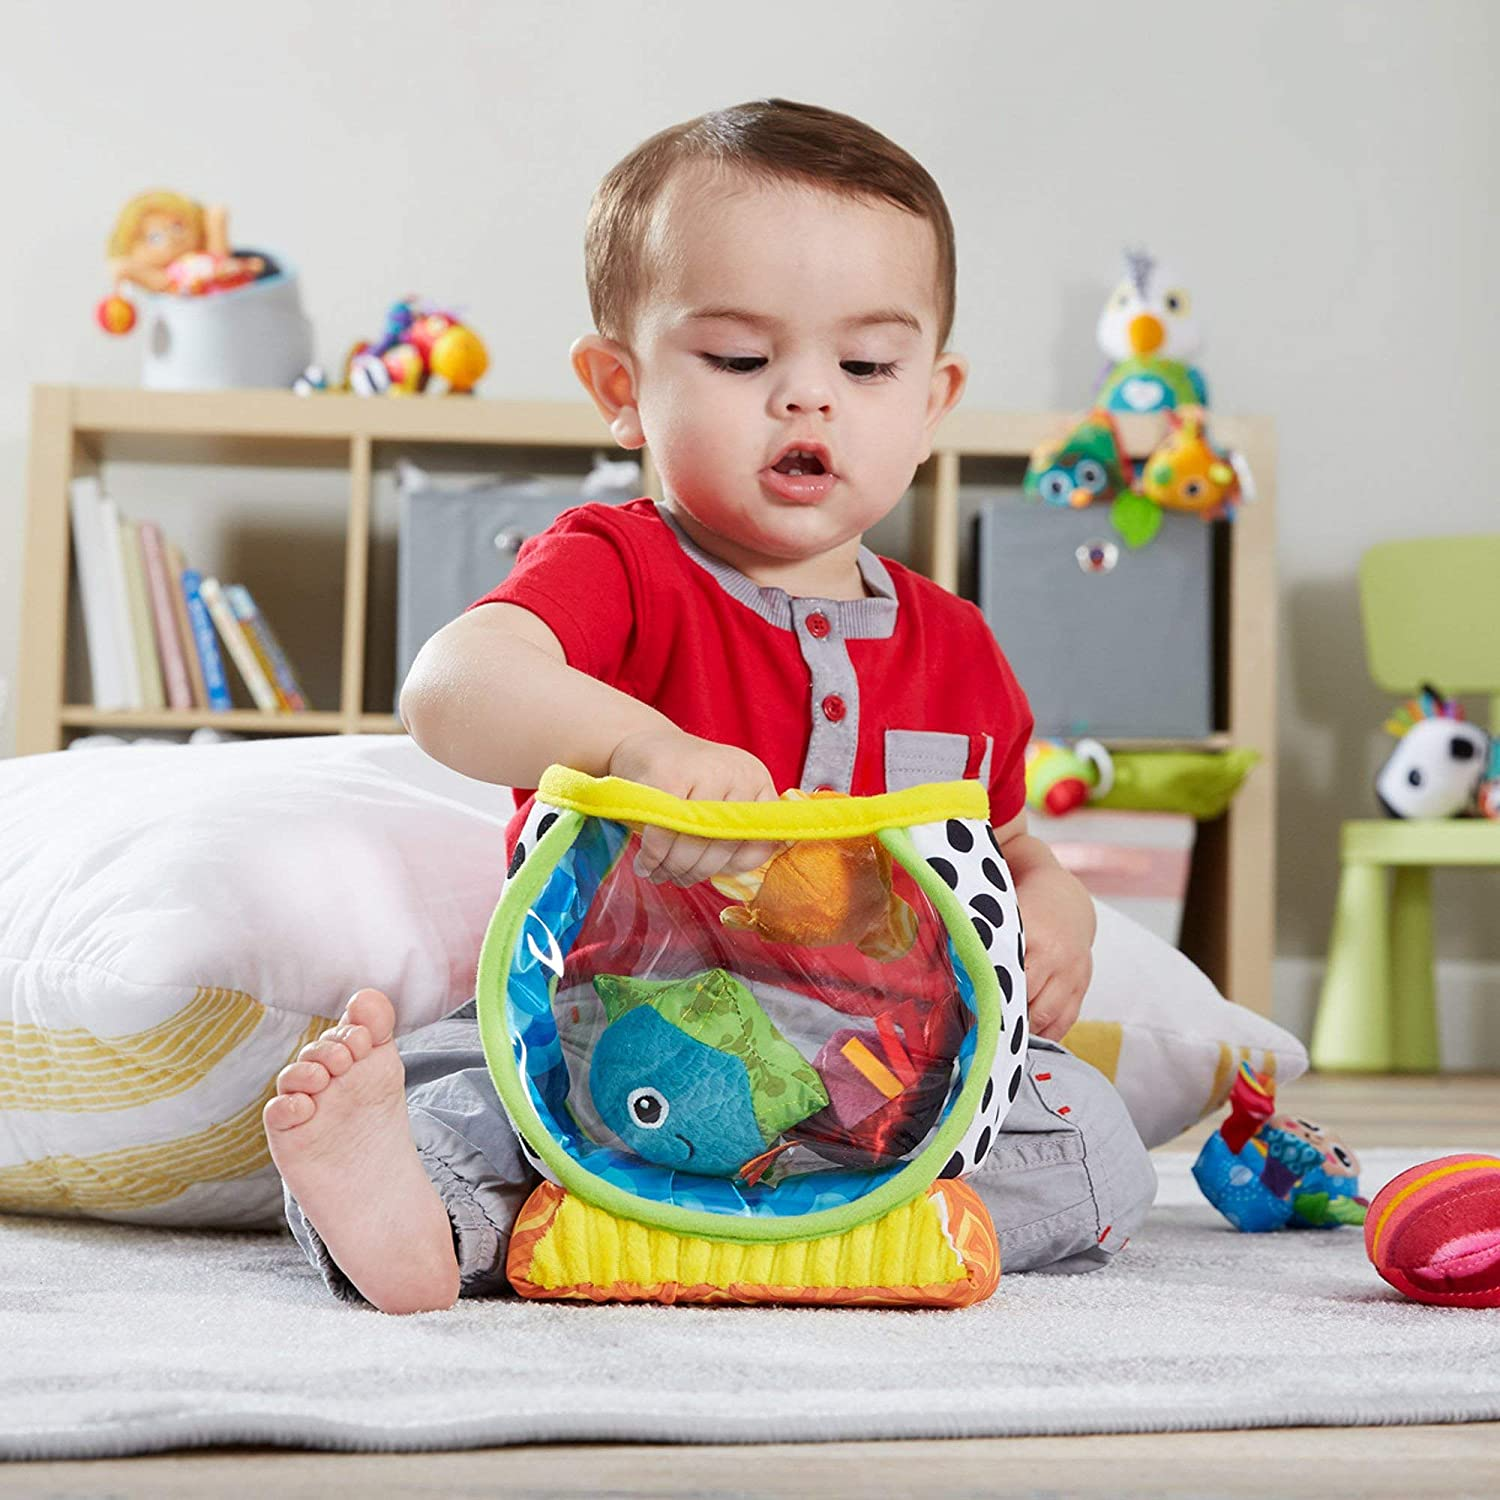 Capture Babys Curiosity with Sea Creatures to Rattle Squeak and Collect with Colorful Patterns Interesting Textures and Unique Sounds My First Fishbowl Toy 6 Months and Older Capture Baby/'s Curiosity with Sea Creatures to Rattle L27204Z LAMAZE